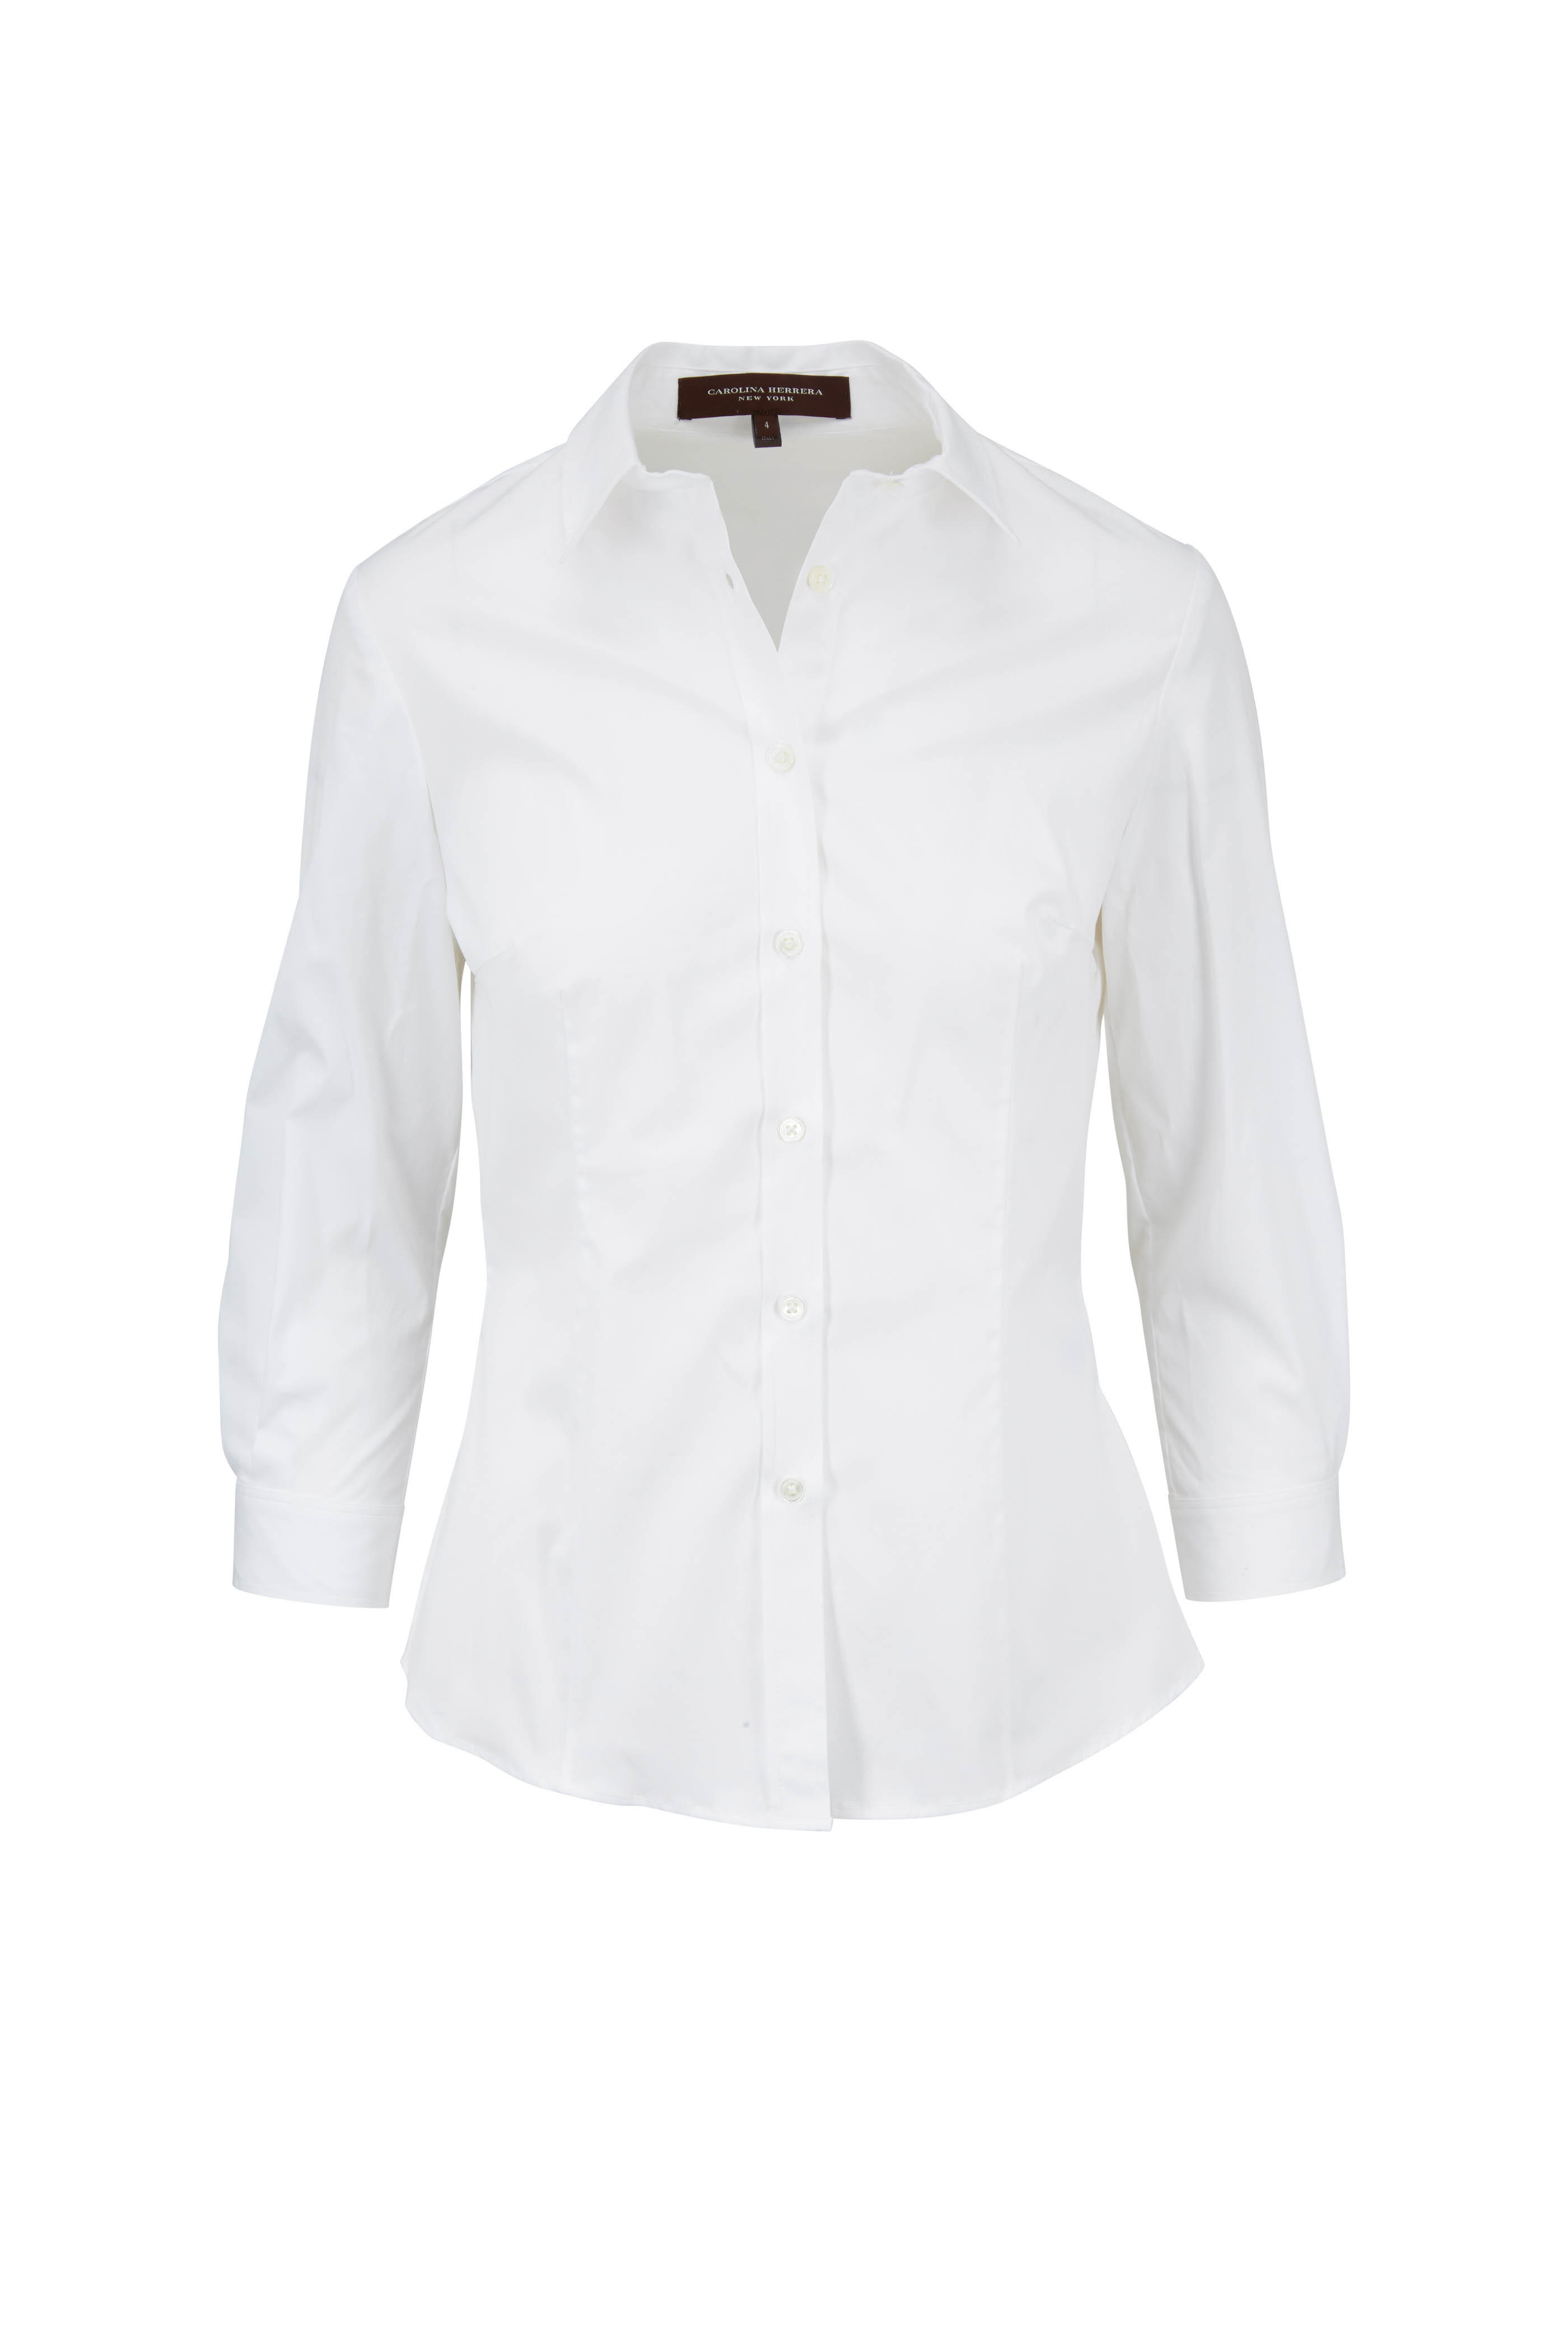 33e509e82c Carolina Herrera - White Stretch Cotton Three-Quarter Sleeve Blouse ...